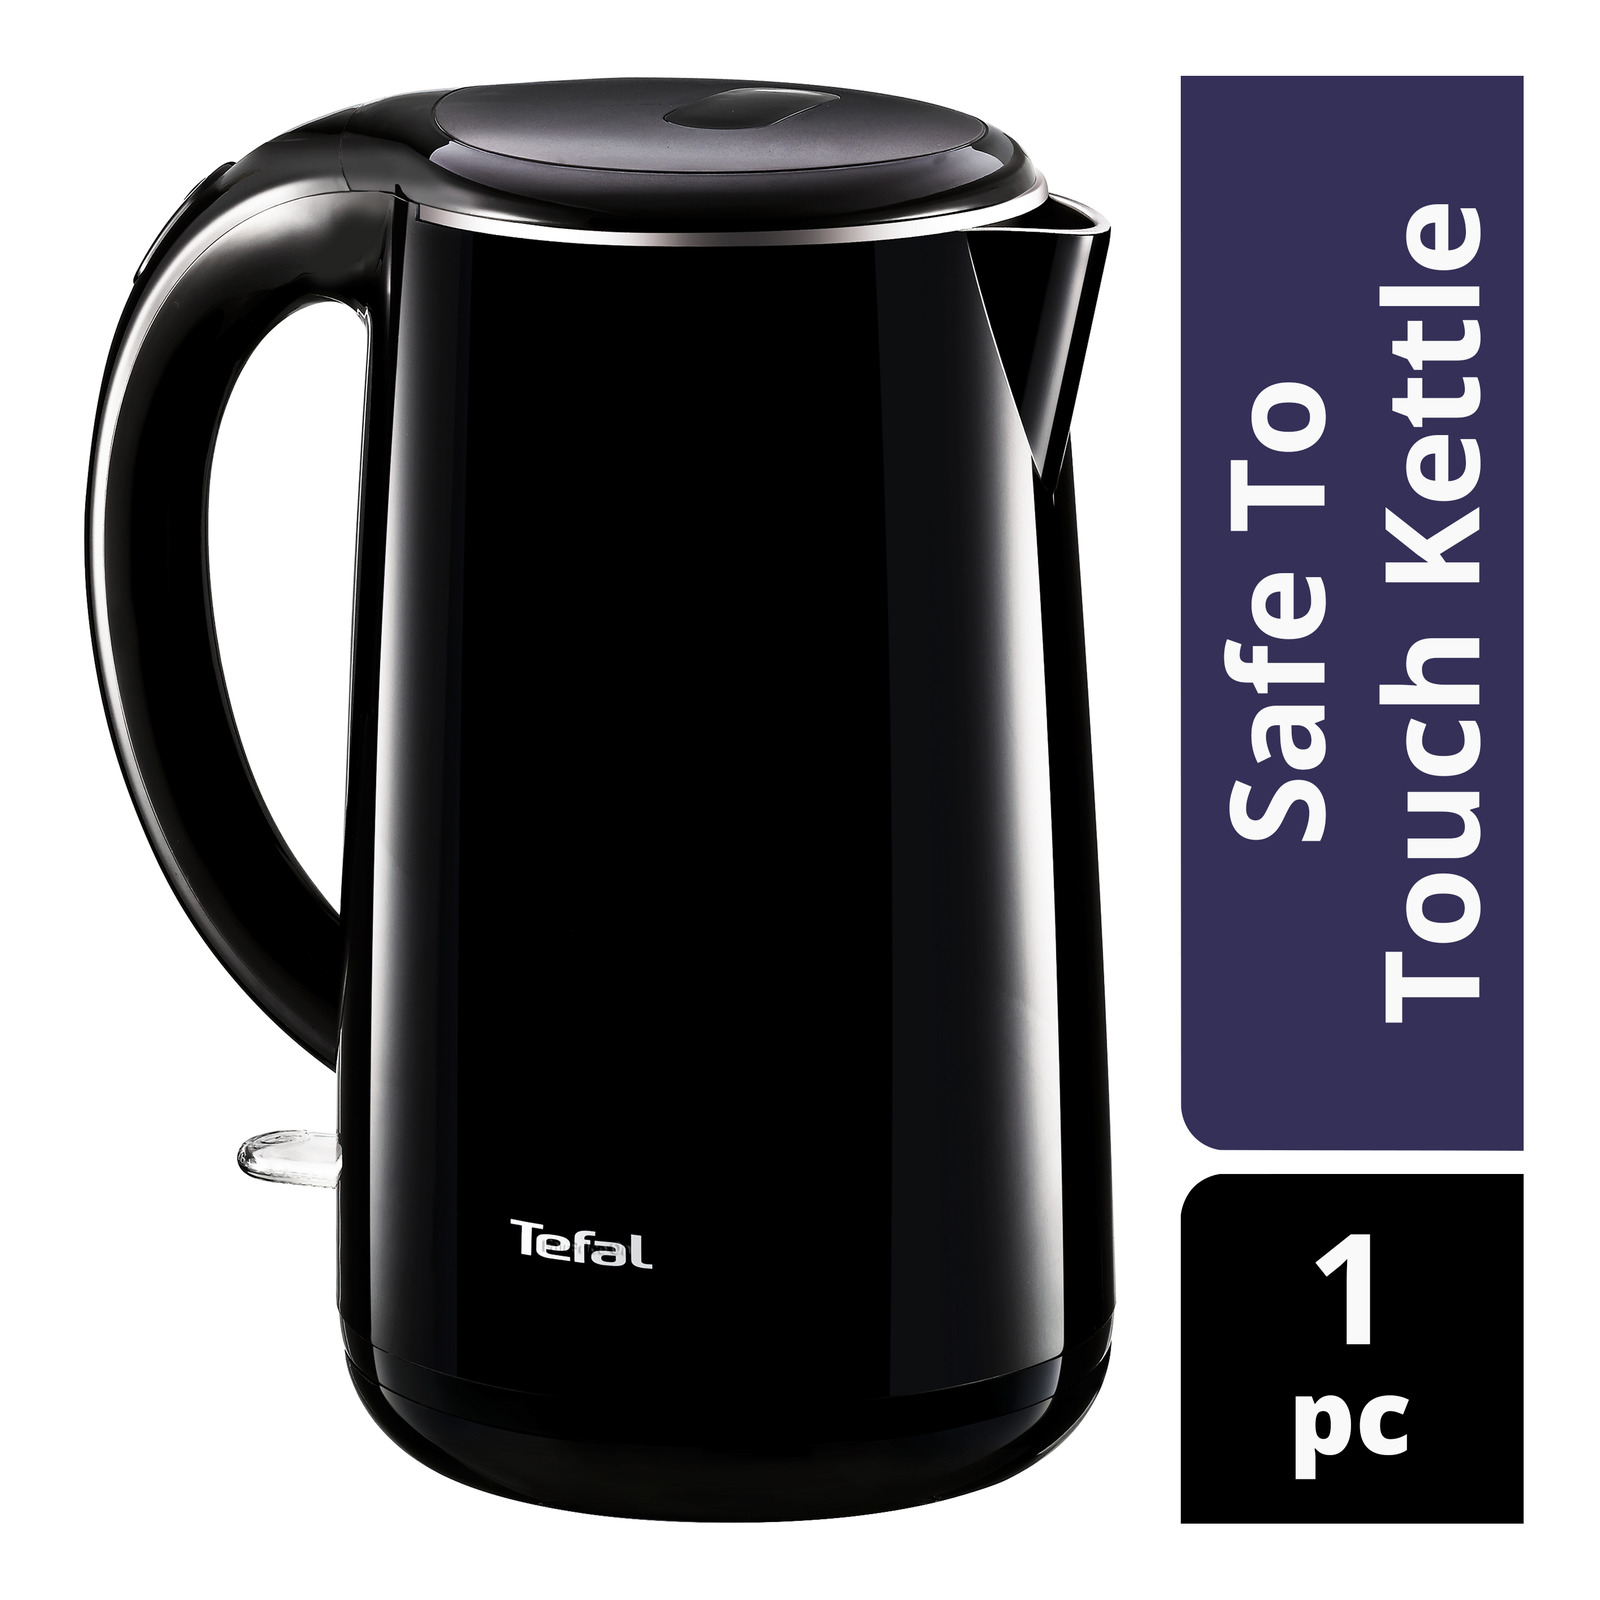 Tefal Safe To Touch Kettle (KO2608)